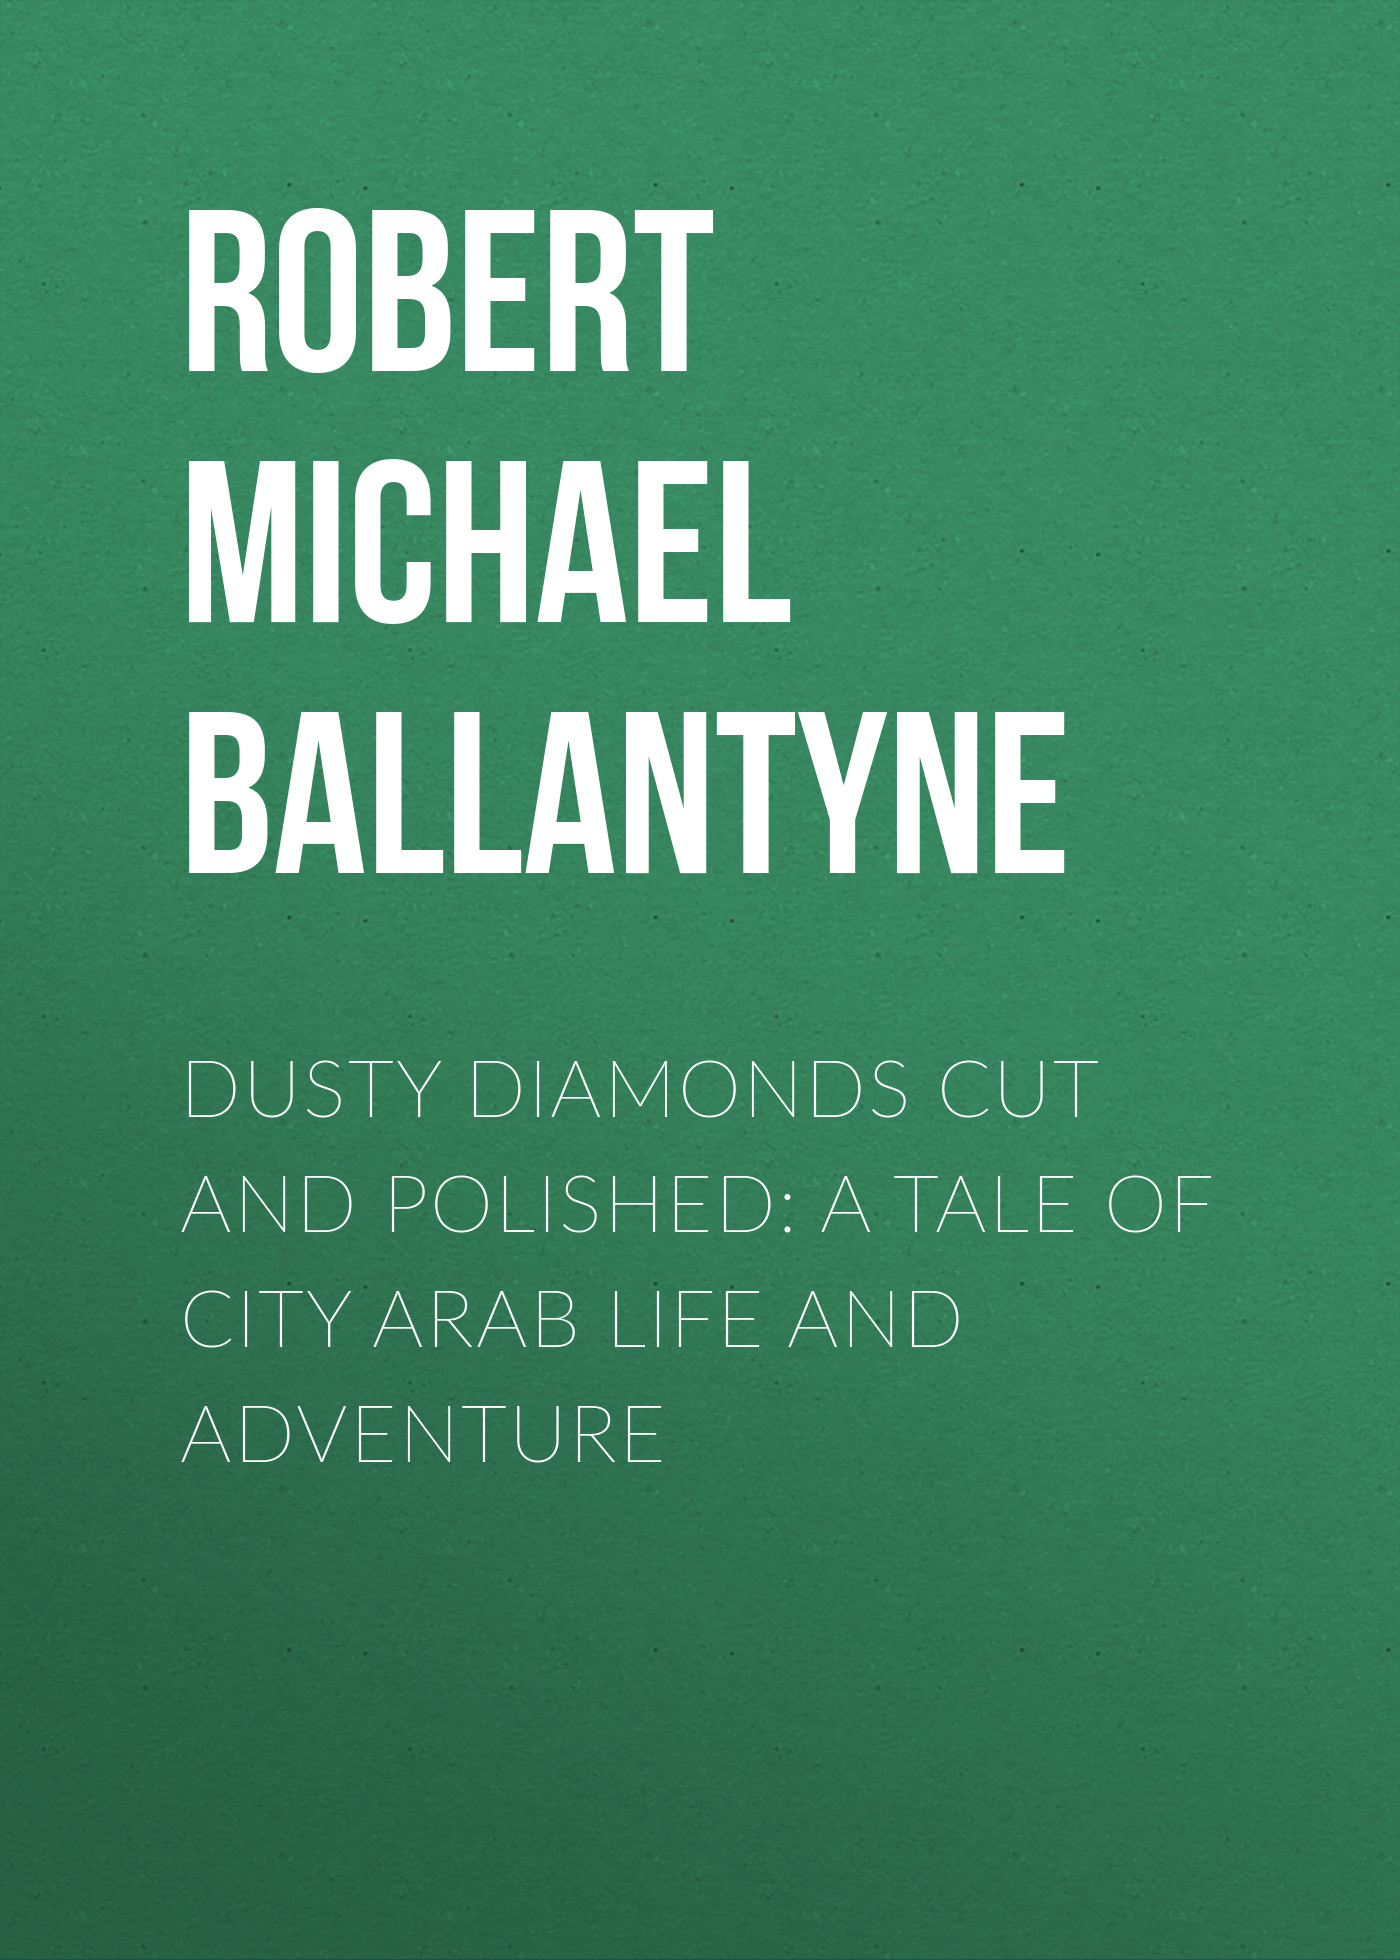 Robert Michael Ballantyne Dusty Diamonds Cut and Polished: A Tale of City Arab Life and Adventure michael smith a complete life